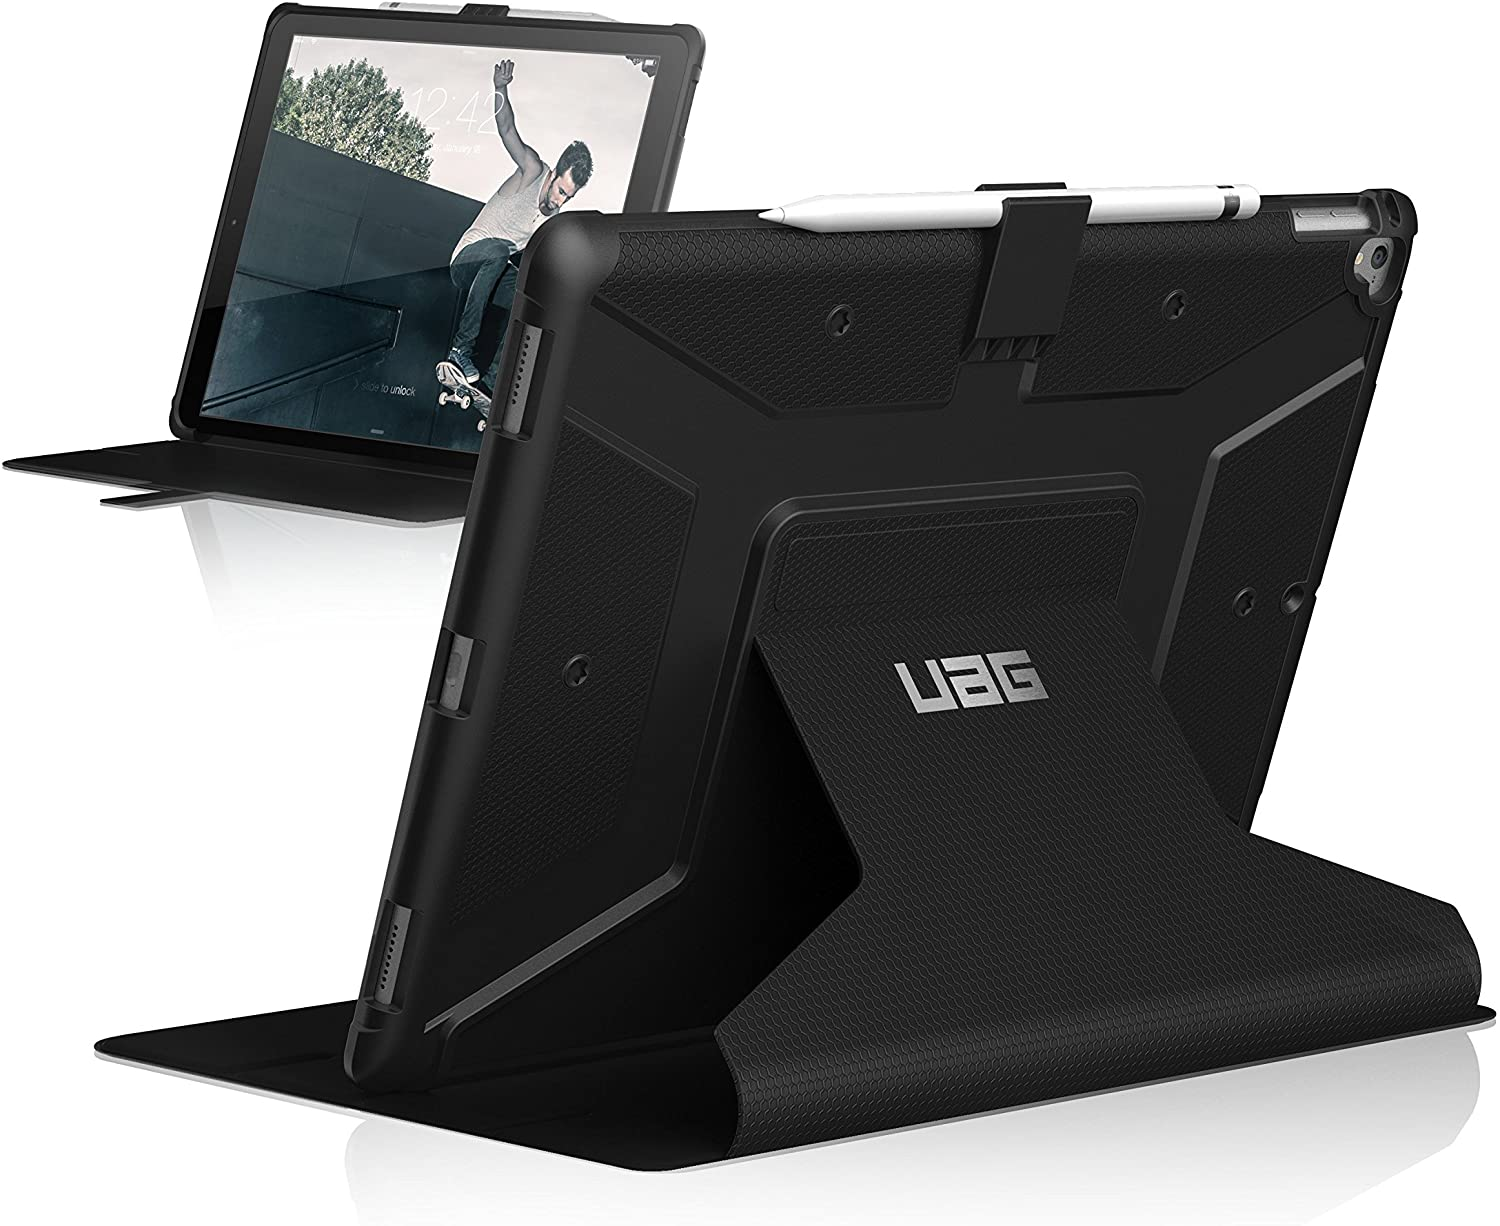 URBAN ARMOR GEAR [UAG] Folio iPad Pro 12.9-inch (2nd Gen, 2017) & iPad Pro 12.9 (1st Gen, 2015) Metropolis Feather-Light Rugged [Black] Military Drop Tested iPad Case